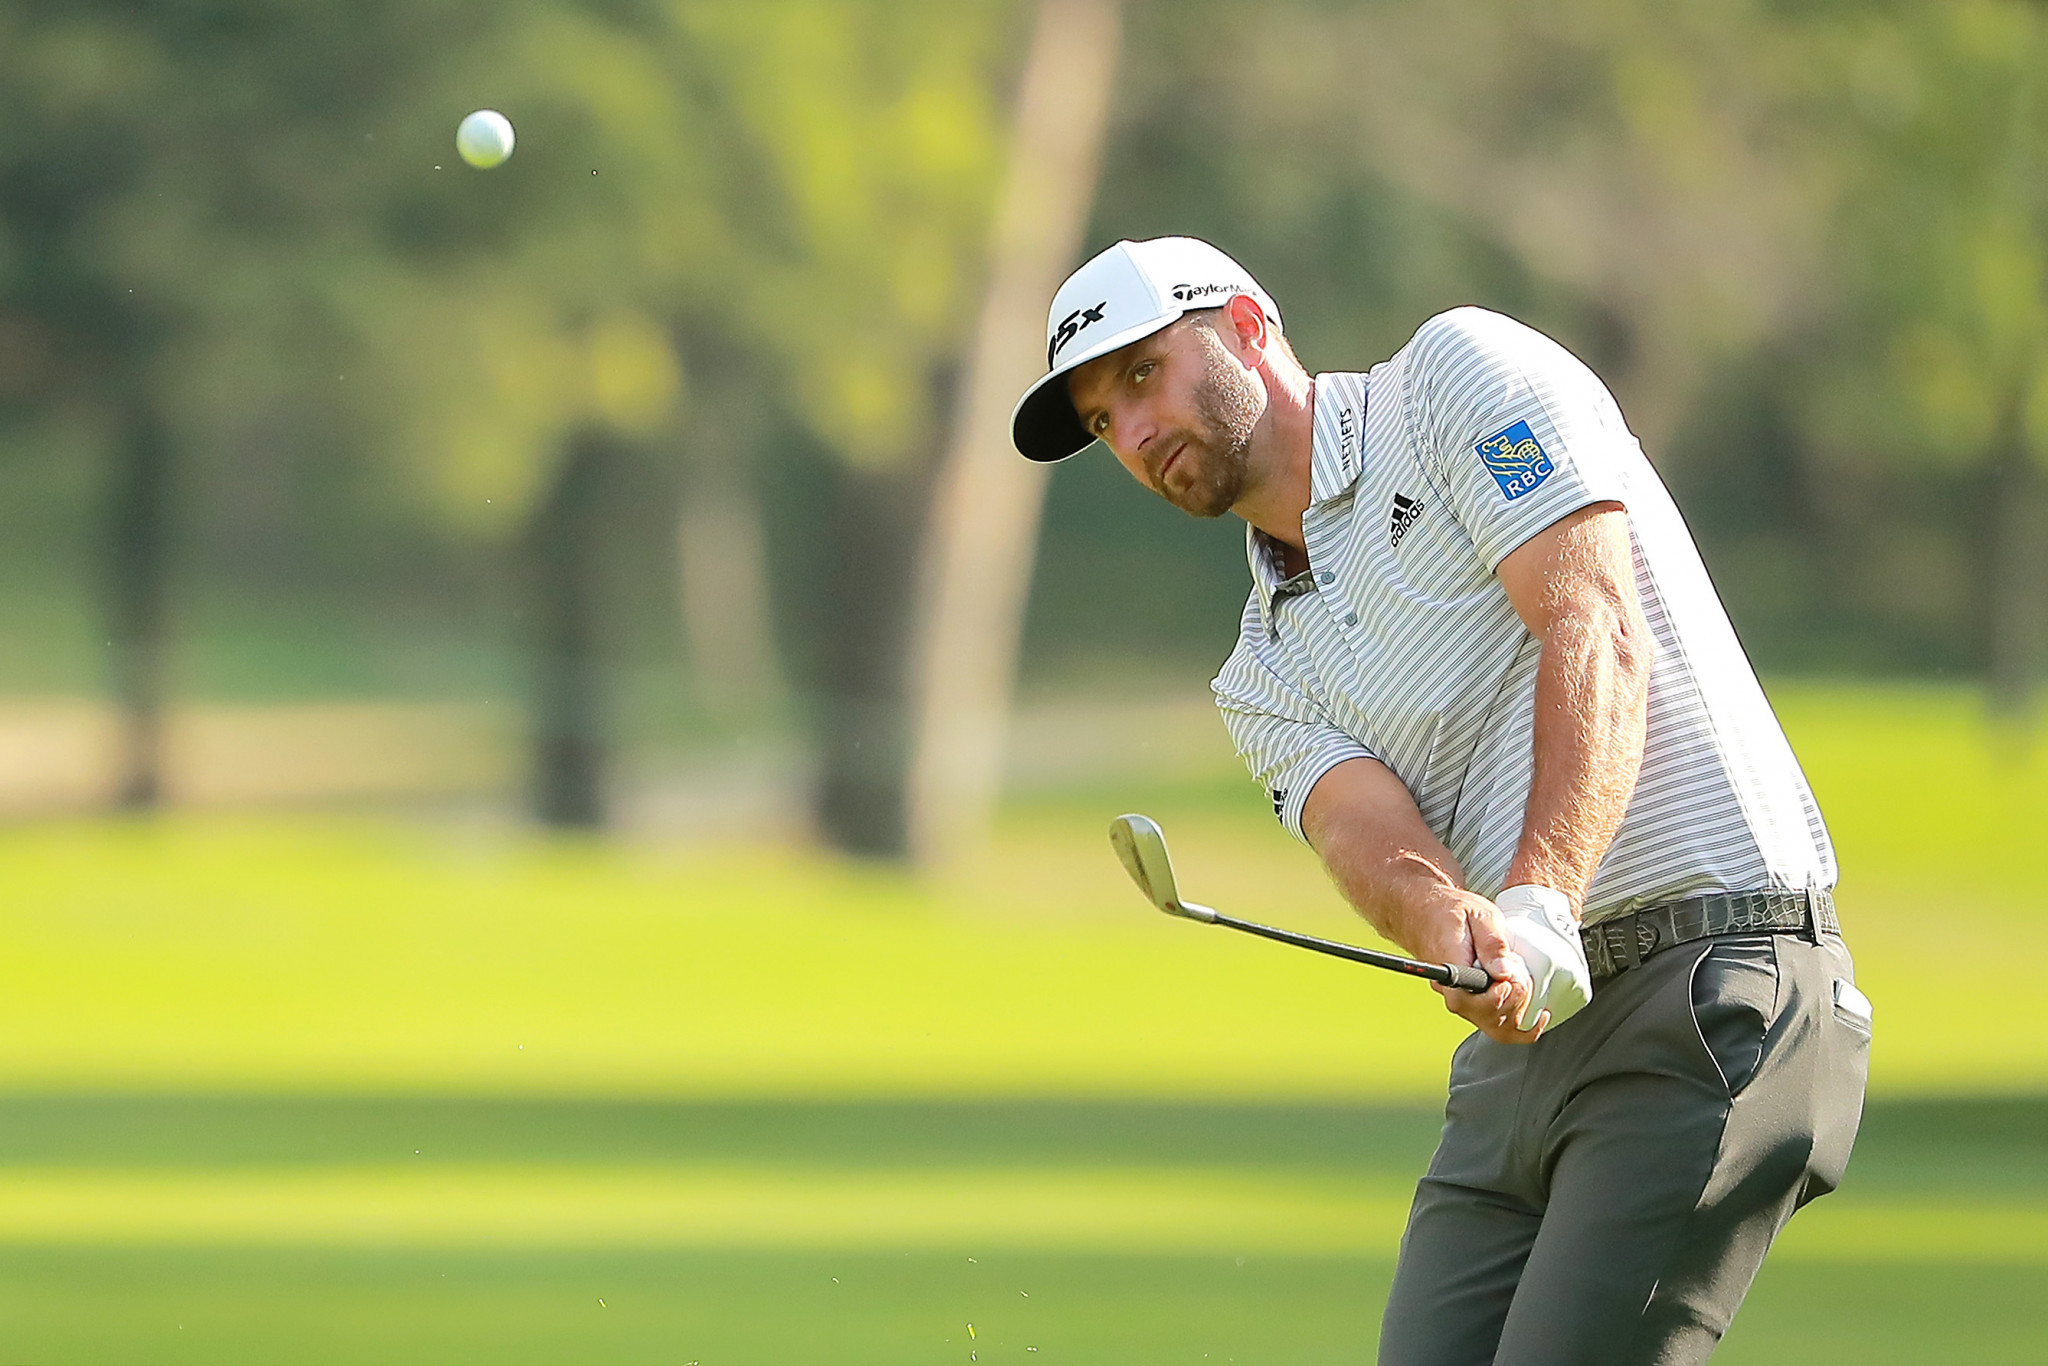 Johnson moves in front of McIlroy by four strokes at WGC-Mexico Championship